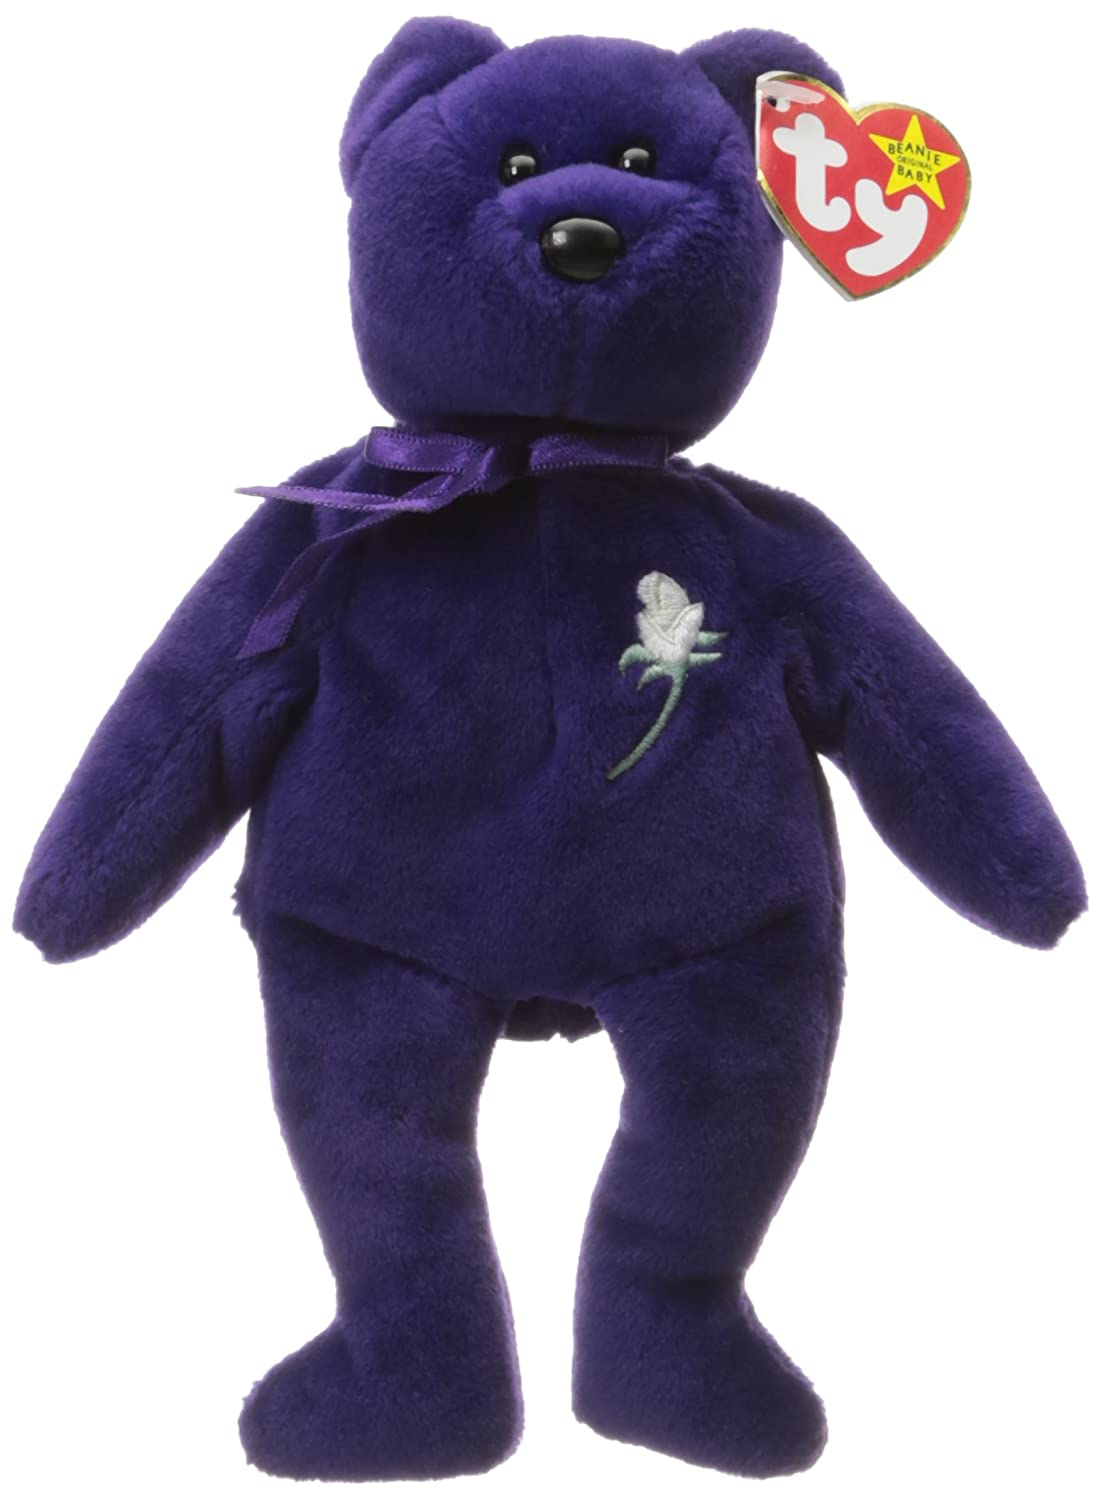 d17774b8b38 Amazon.com  Ty Beanie Baby Princess 1st Edition!  Toys   Games